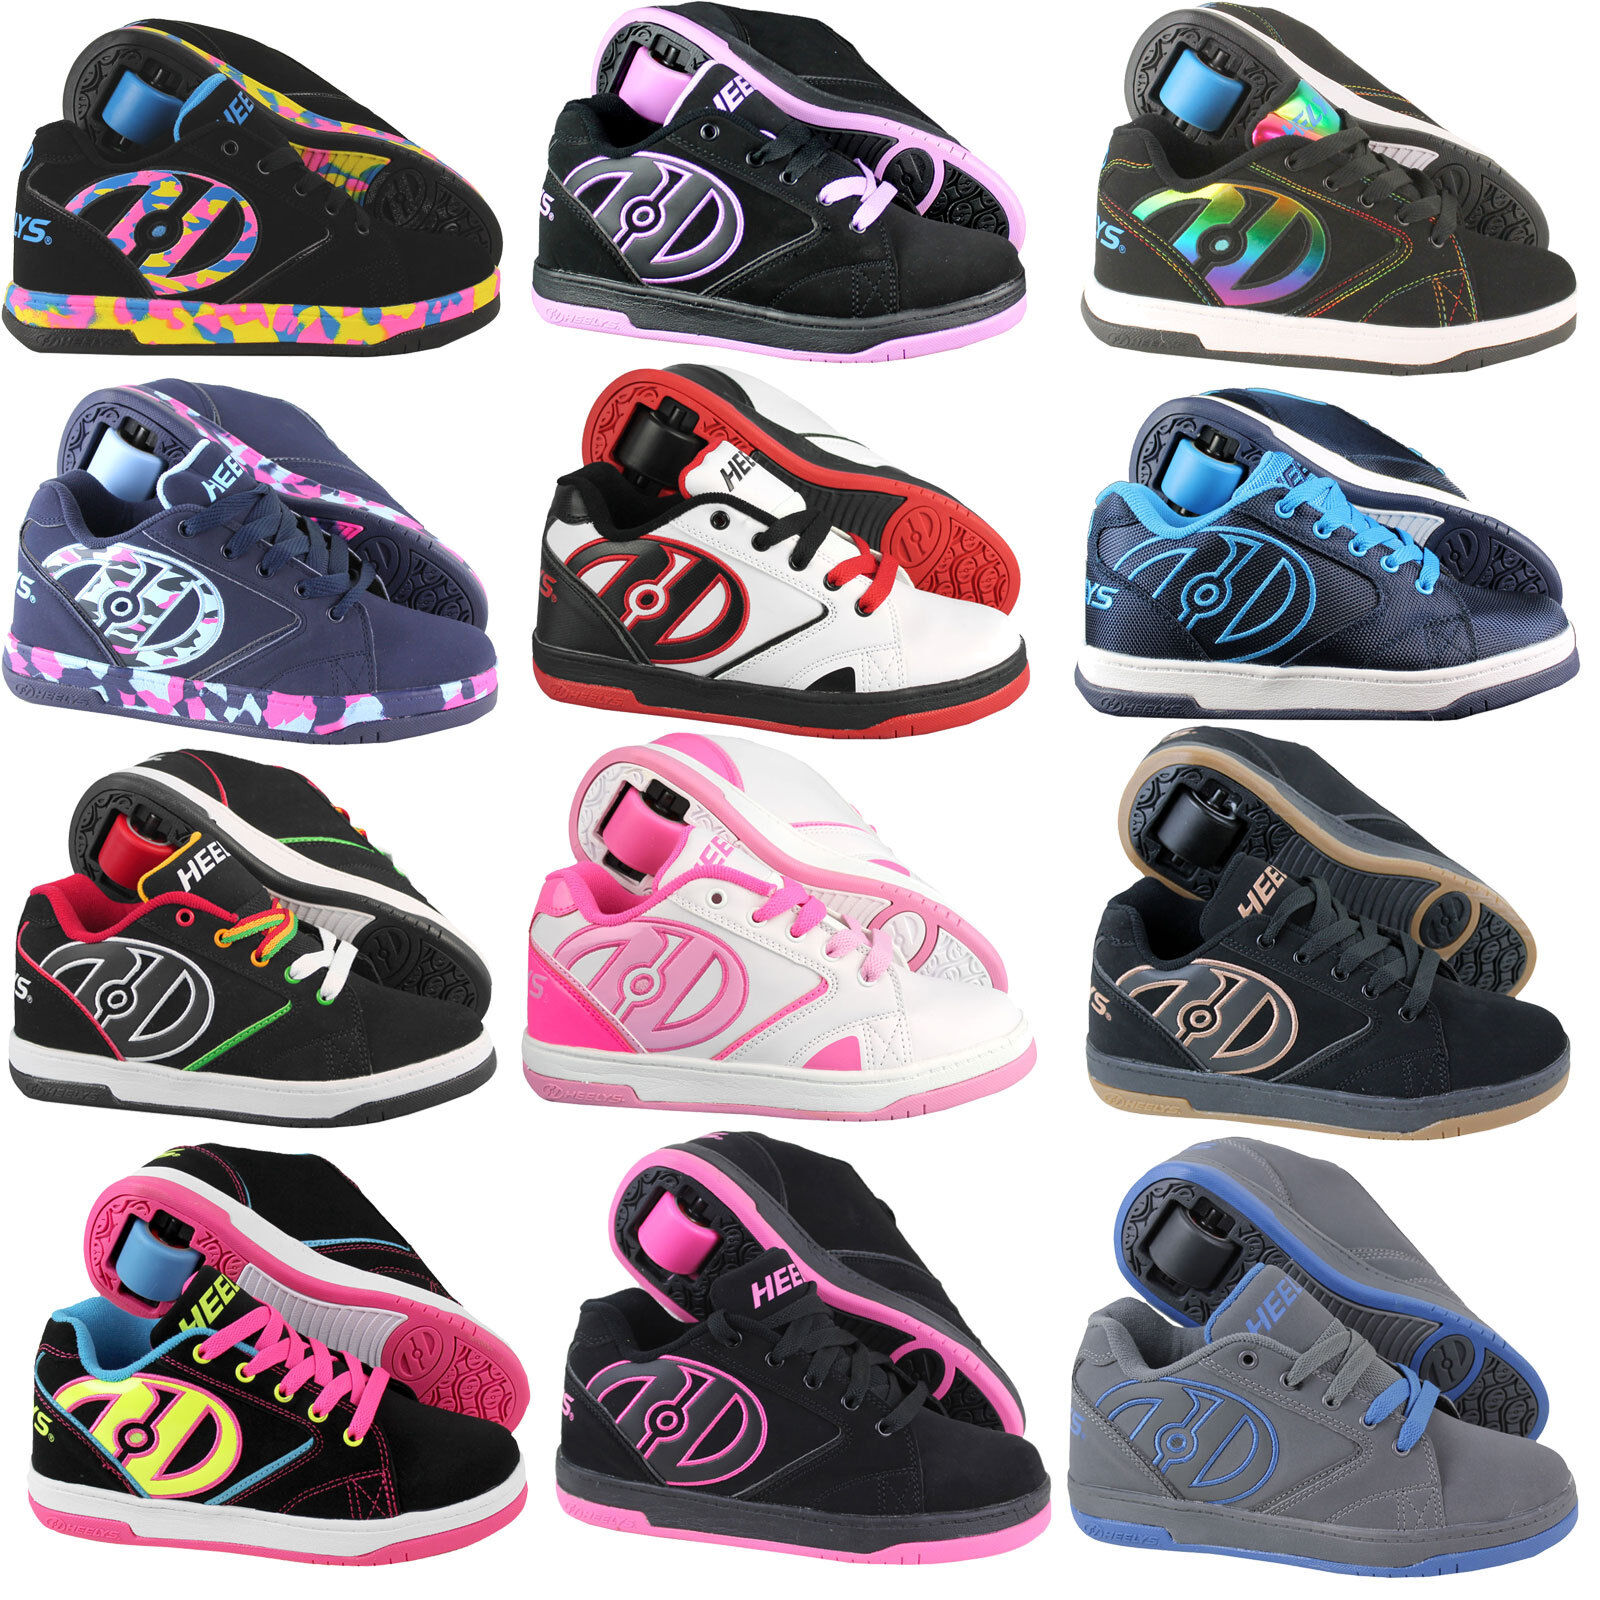 Heelys Propel 2.0 shoes with Wheels Roller shoes Heelies Iconic